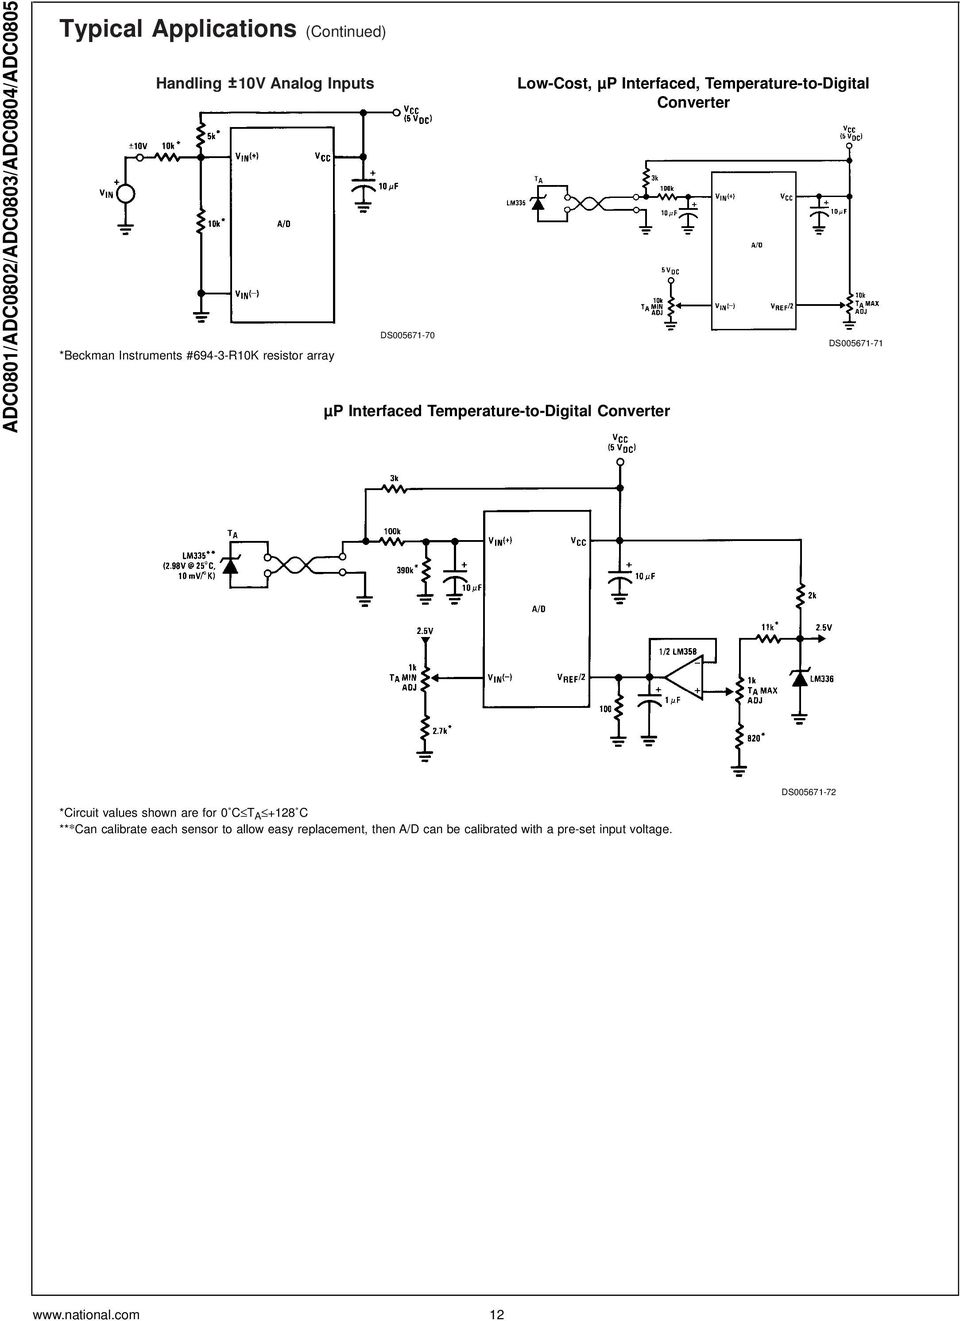 Simple Power Pulse Using By Lm350 And Ne555 Circuit Diagram Adc0801 Adc0802 Adc0803 Adc0804 Adc Bit P Compatible A D Converters Interfaced Temperature To Digital Converter Ds005671 71 Values Shown Are